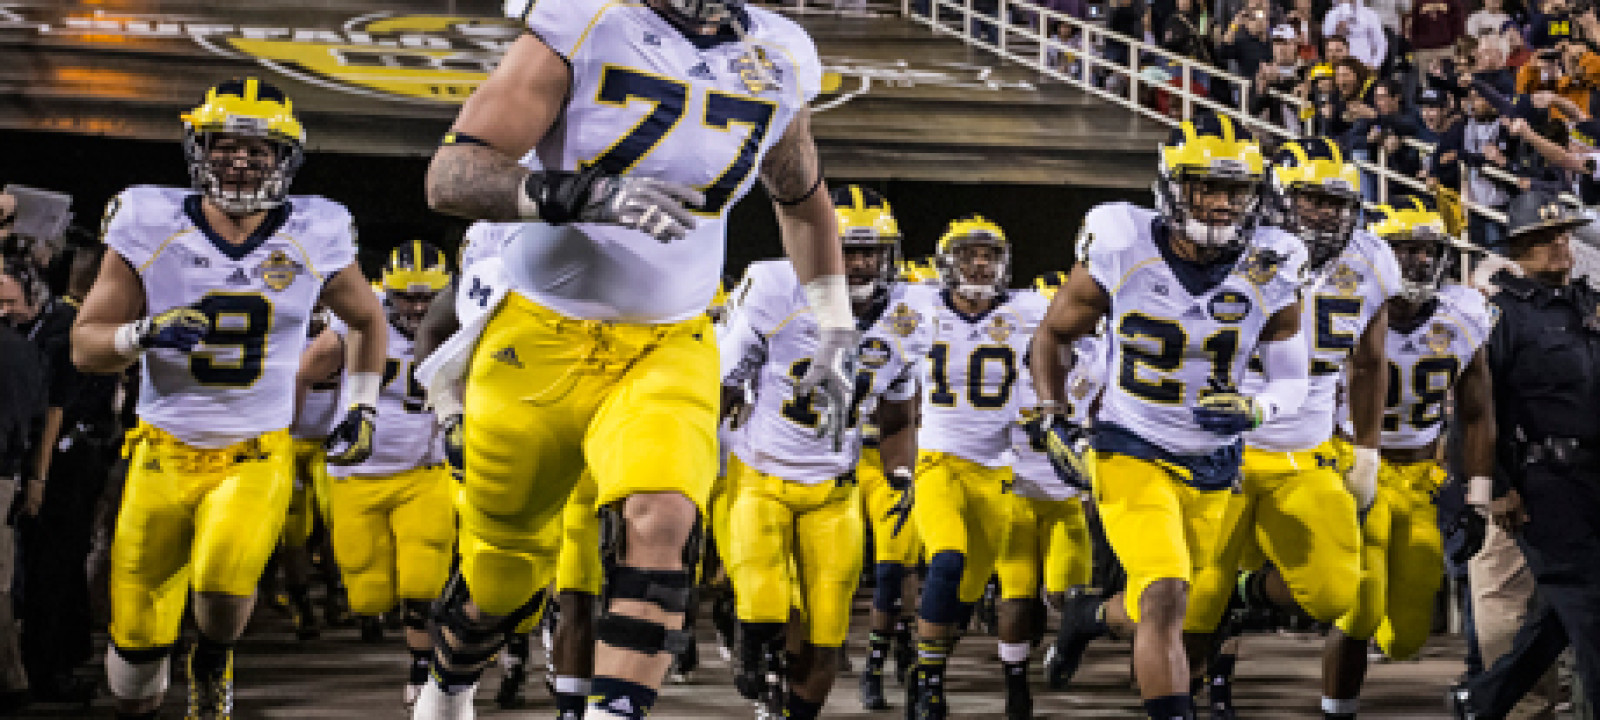 460x300_michiganwolverines